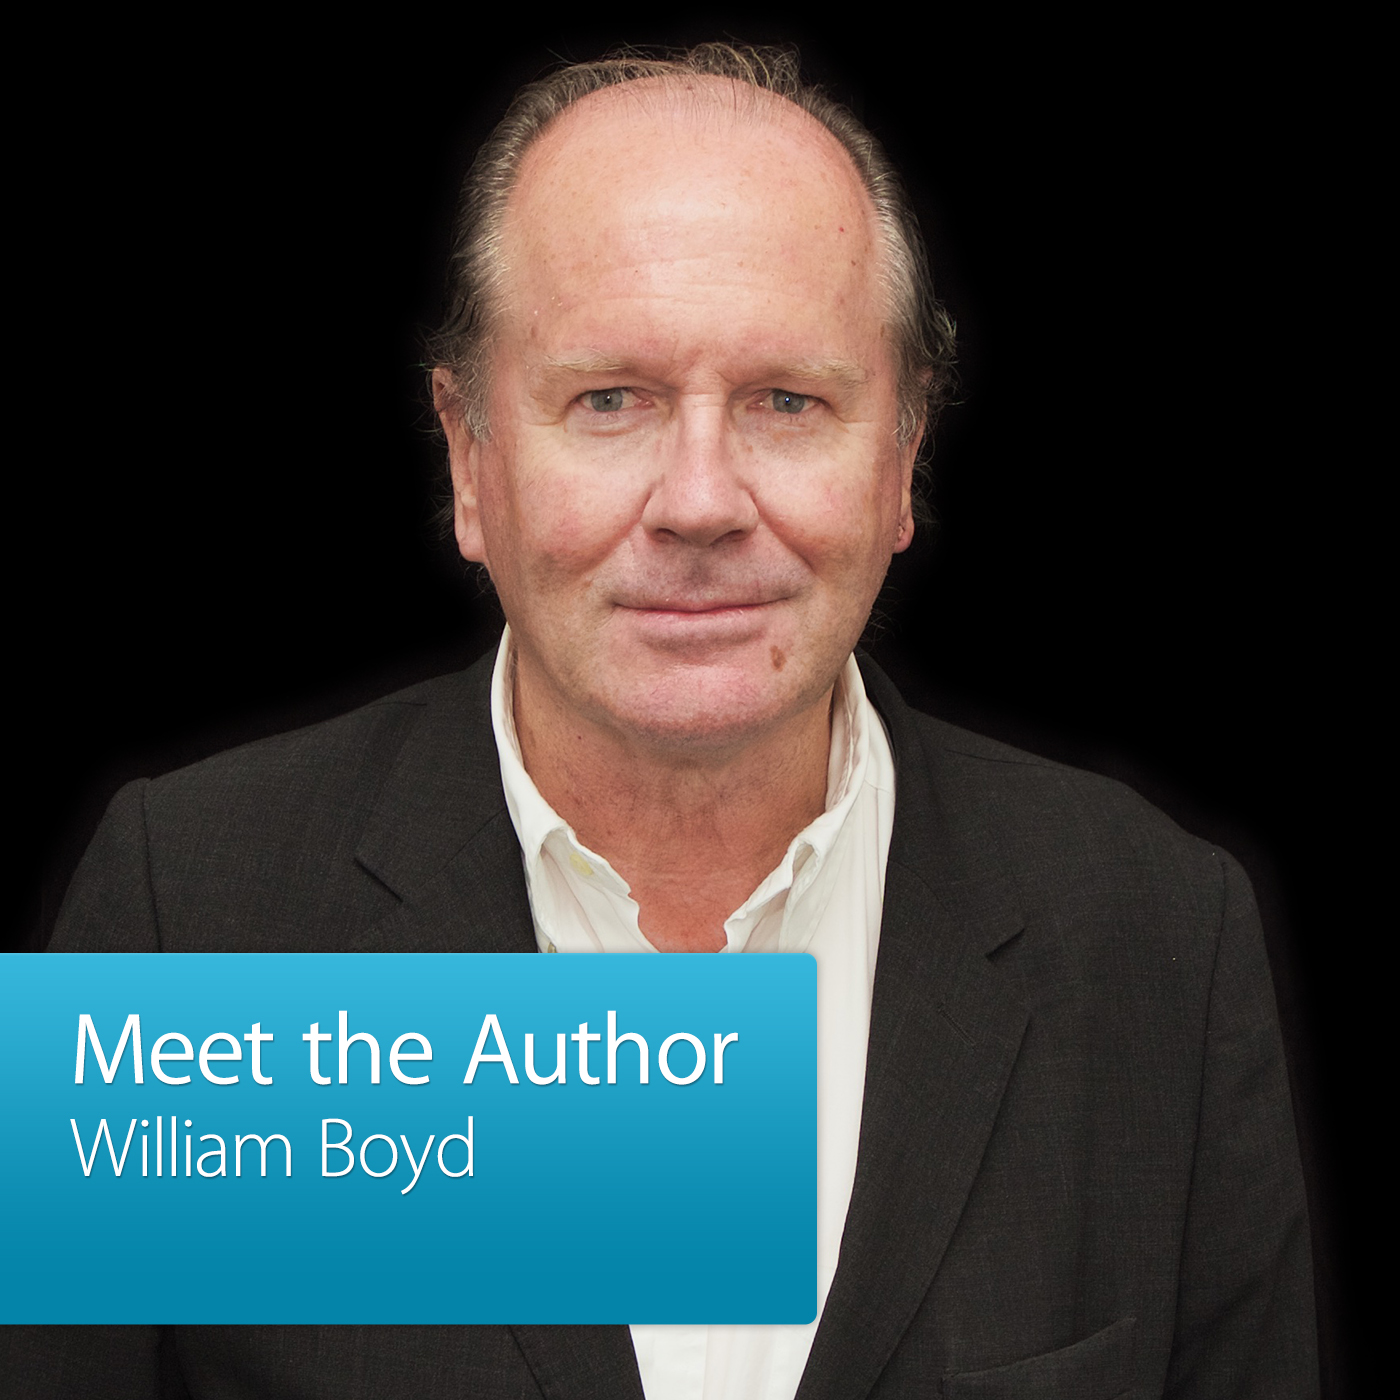 William Boyd: Meet the Author